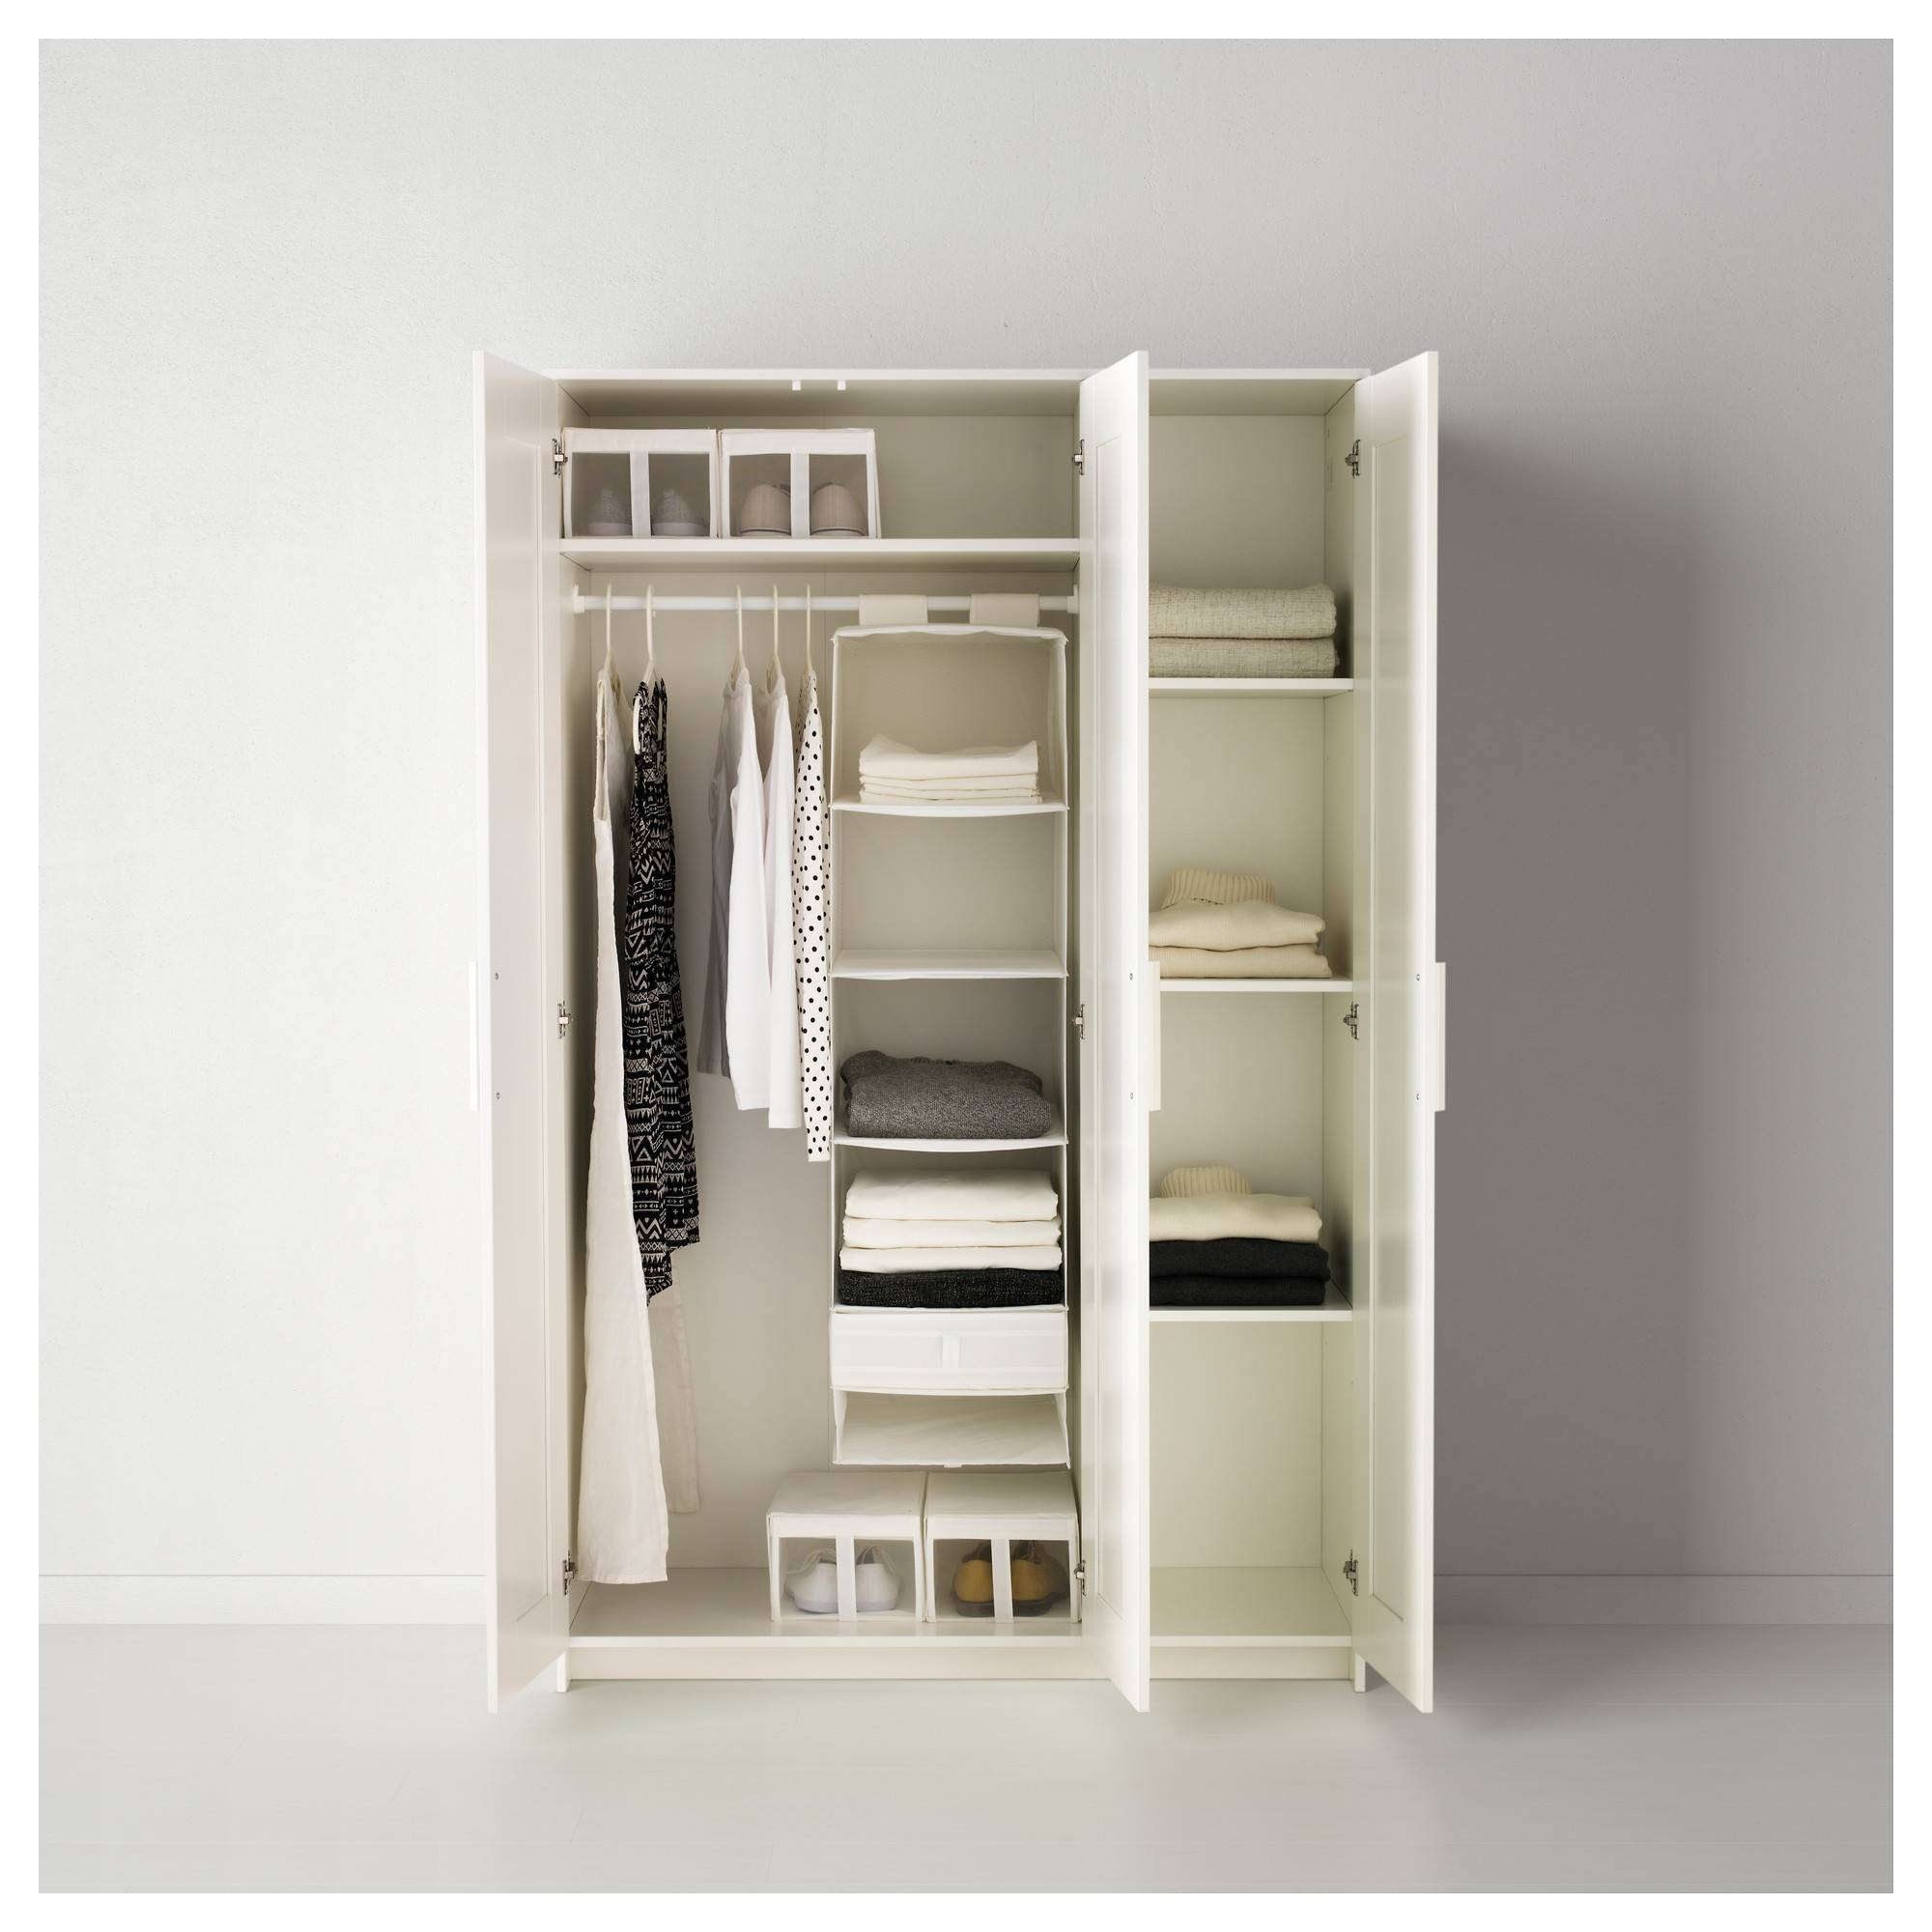 Brimnes Wardrobe With 3 Doors – White – Ikea In Wardrobe With Drawers And Shelves (View 4 of 30)